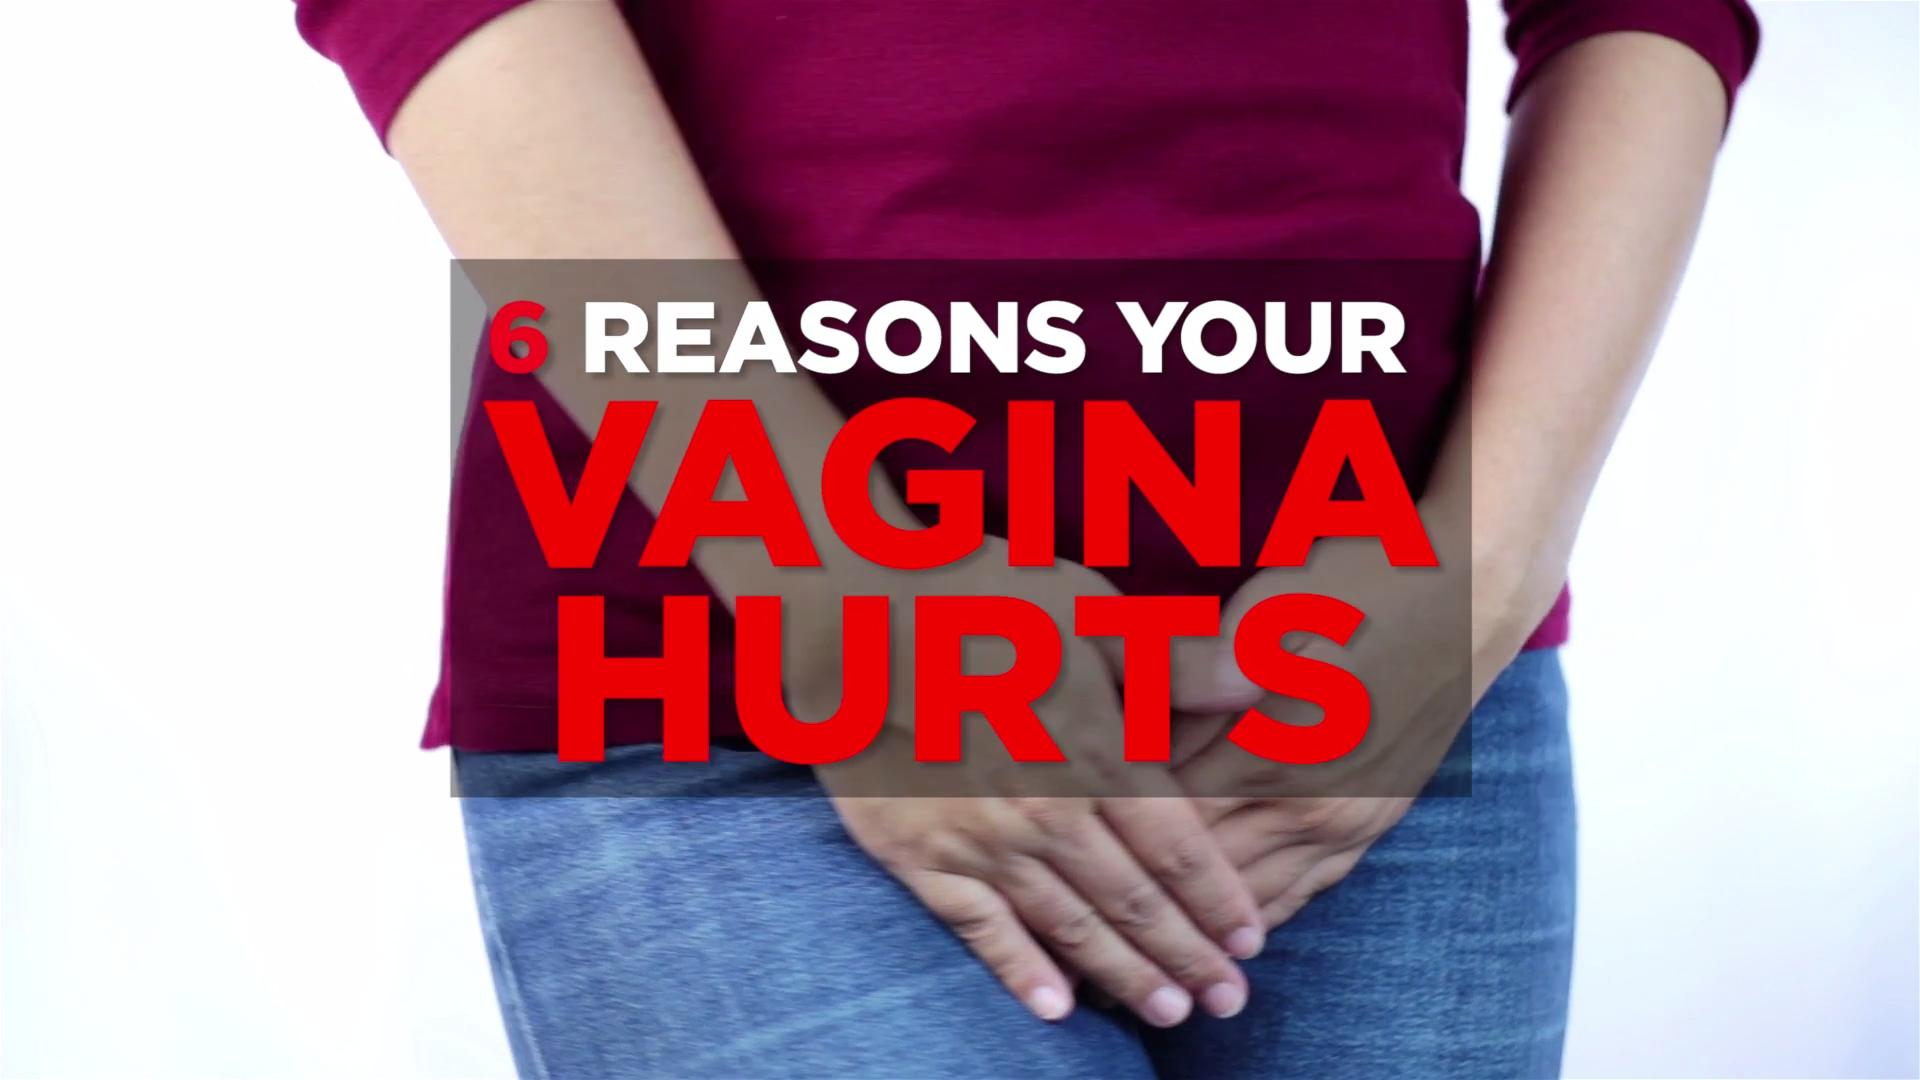 Why your vagina hurts